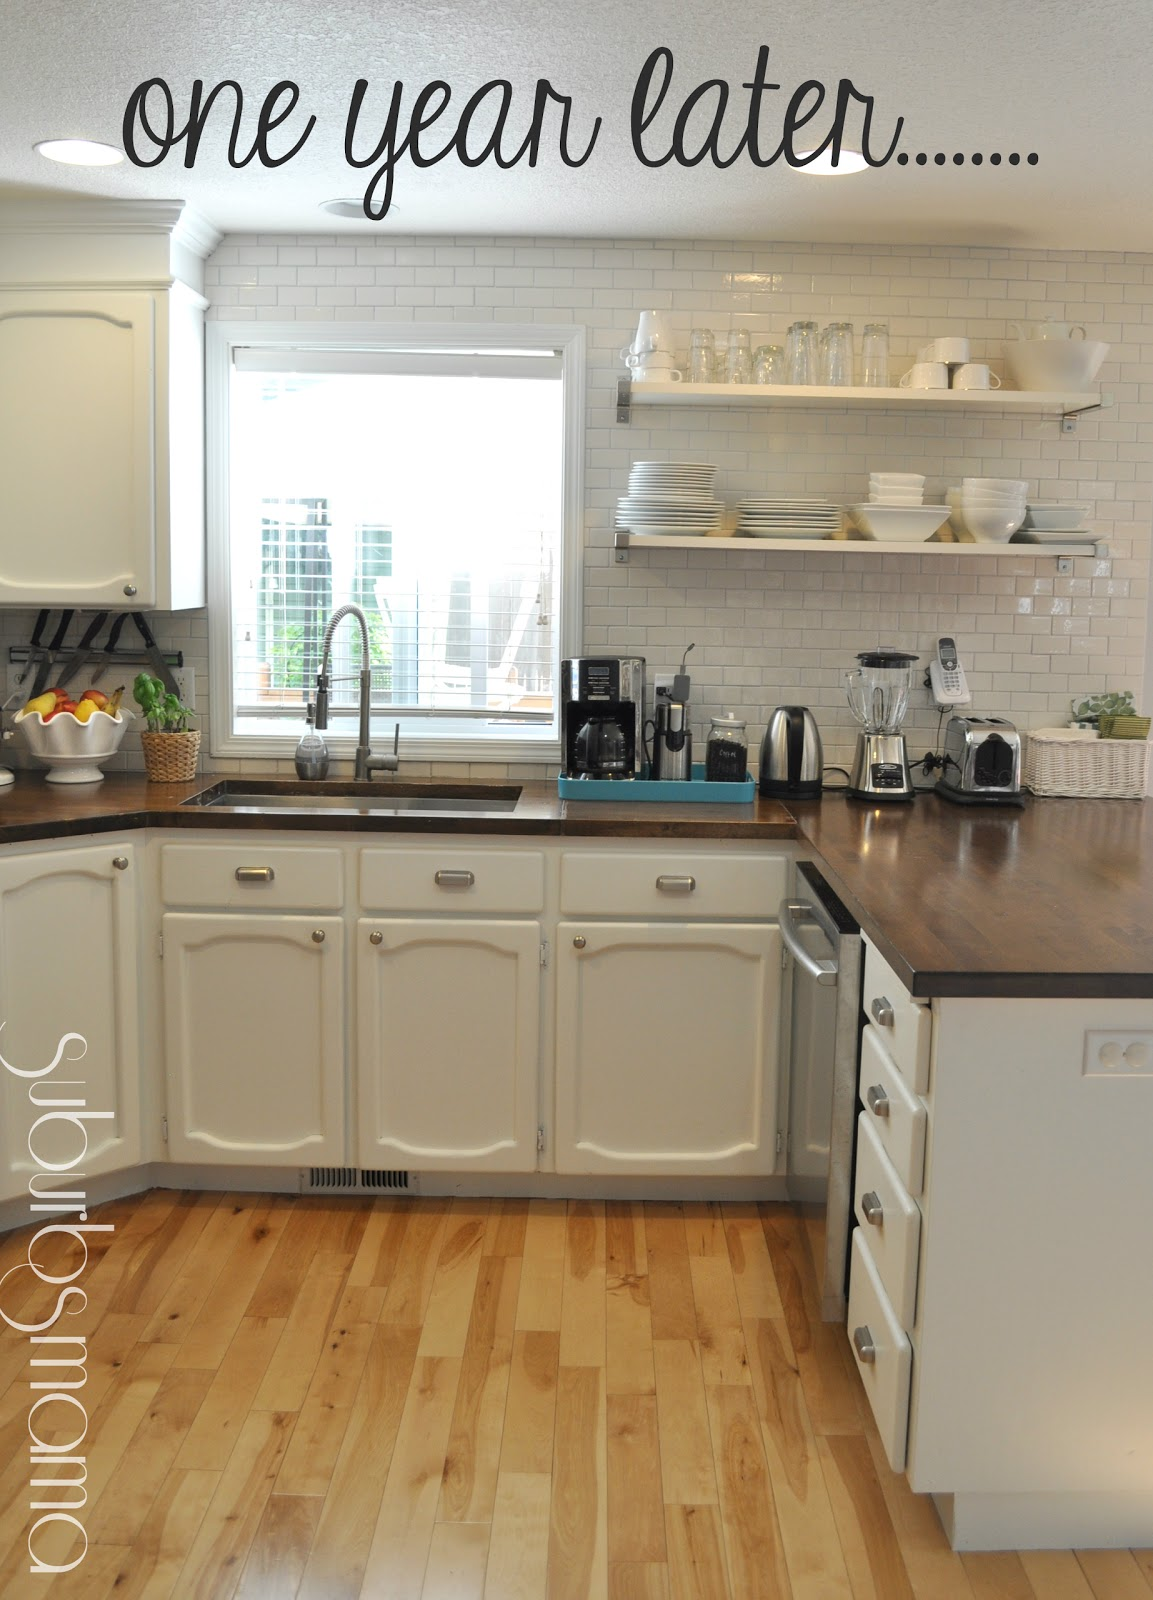 White Kitchen Butcher Block : Suburbs Mama: Kitchen Update One Year Later (white cabinets and butcher block counters)